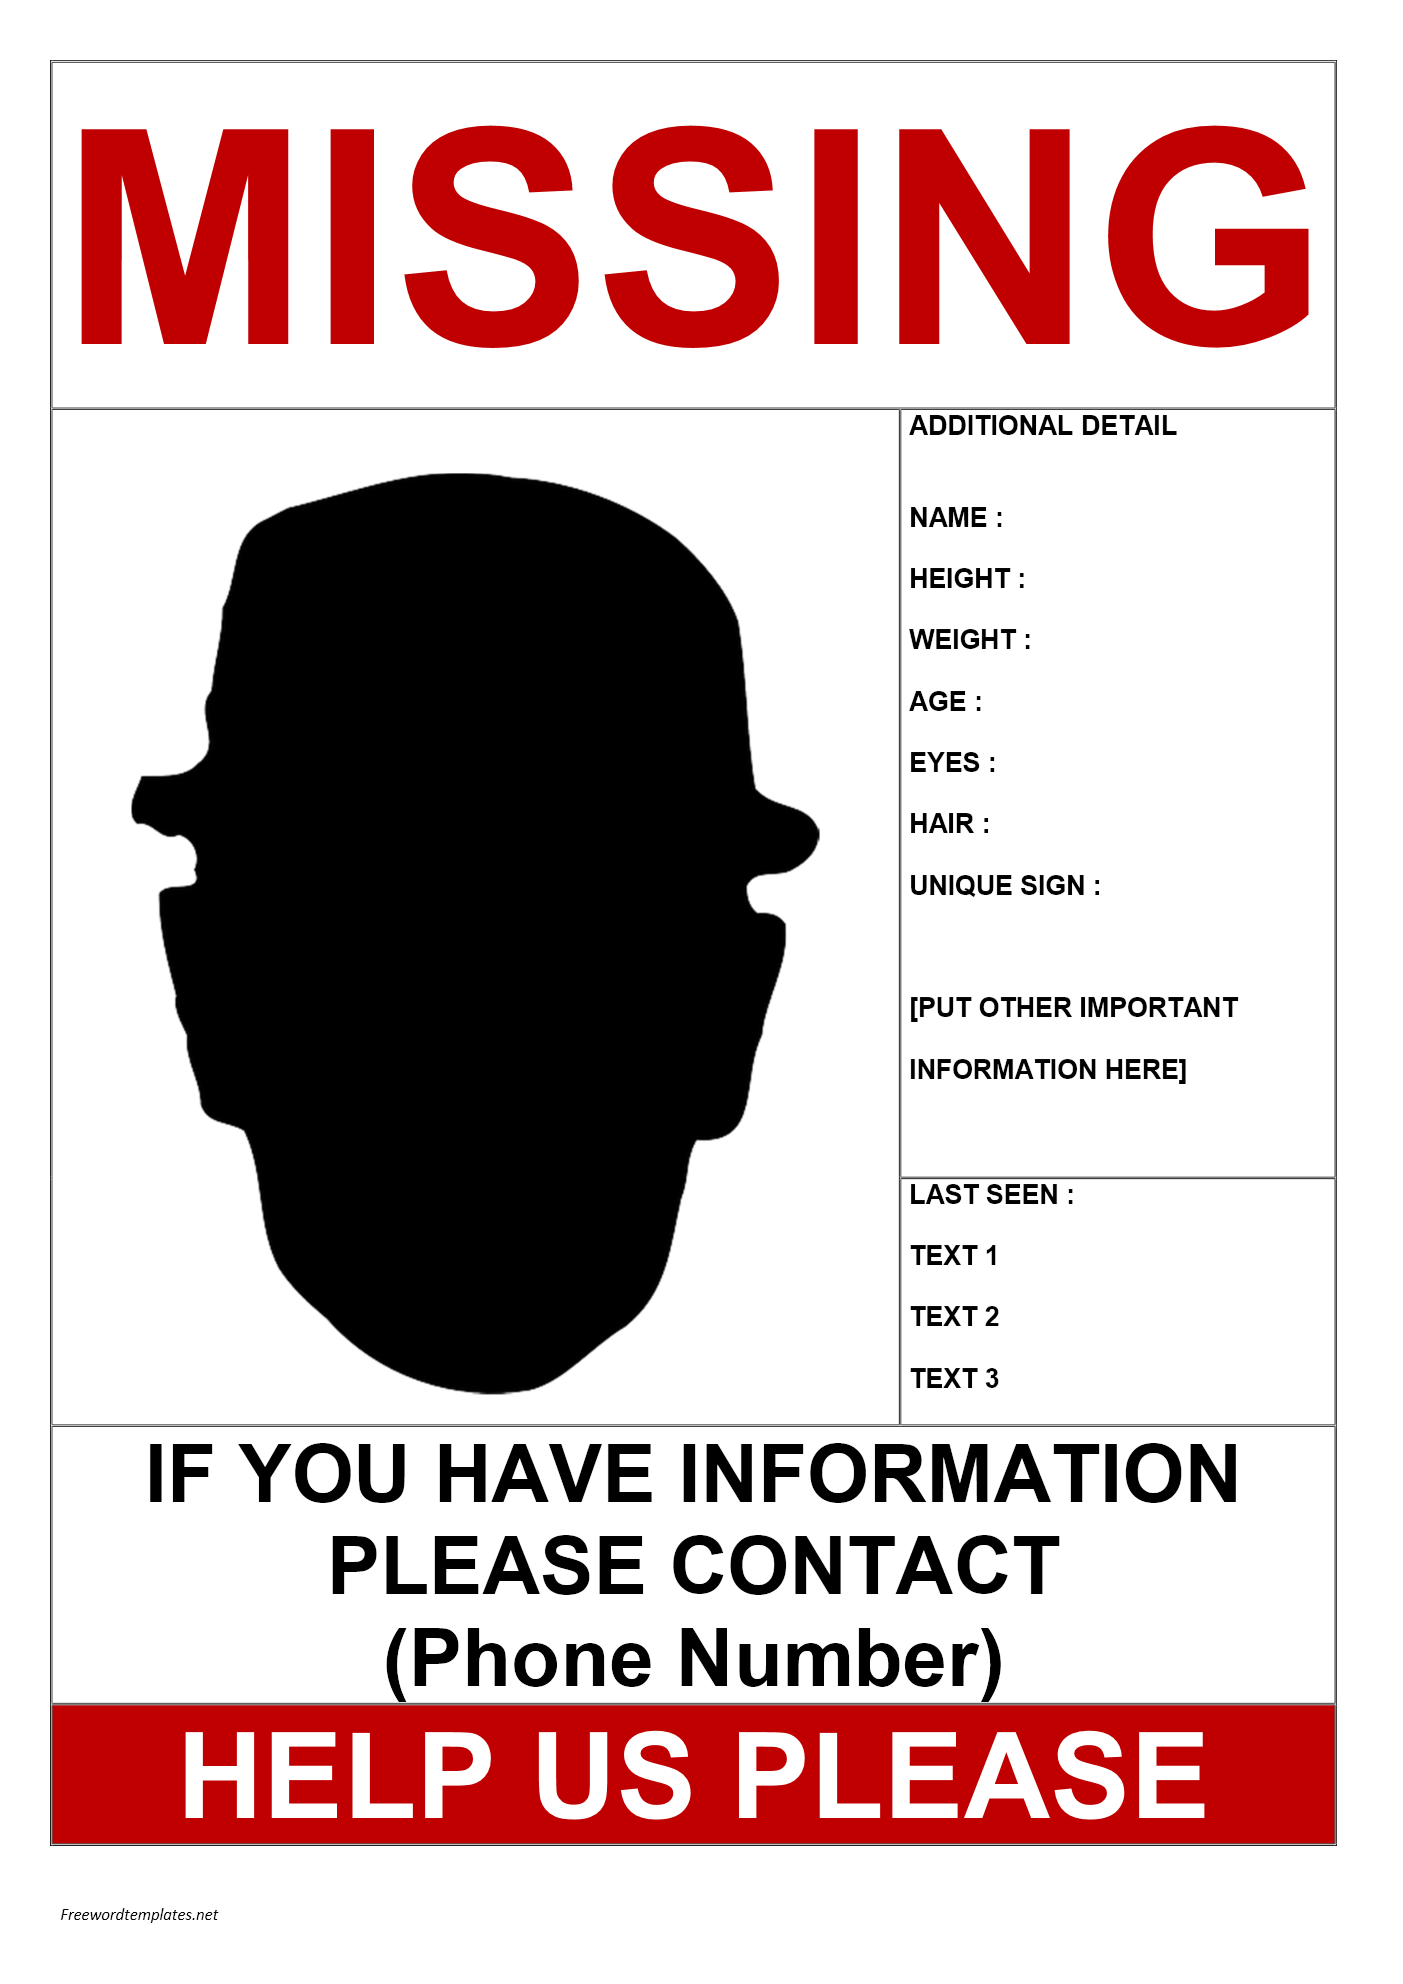 Missing Person Poster Template Idea Missing People Posters